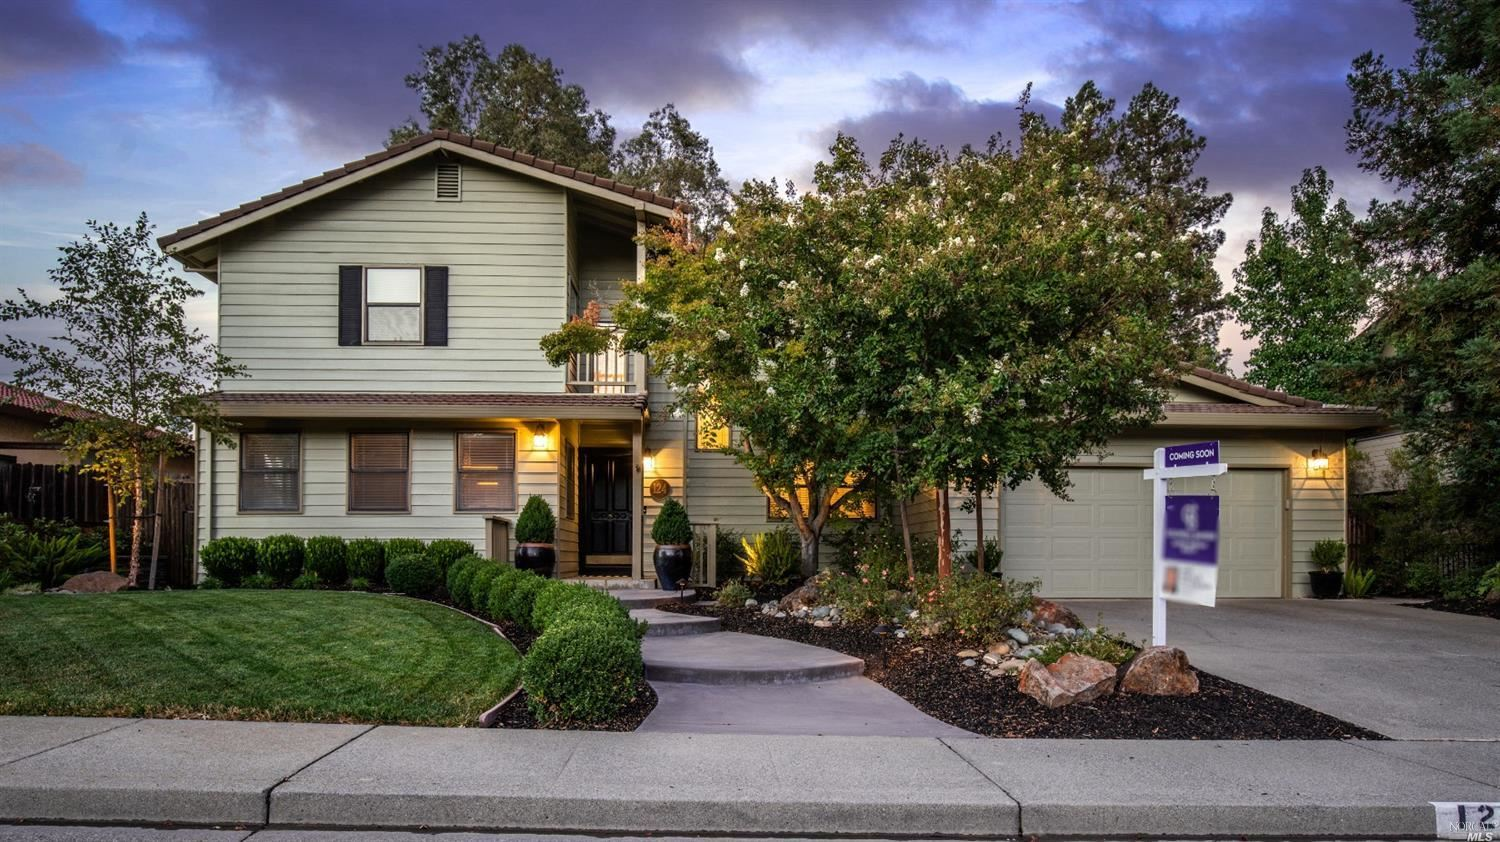 124 Hillview Drive, Vacaville, CA 95688 - MLS#: 321087857